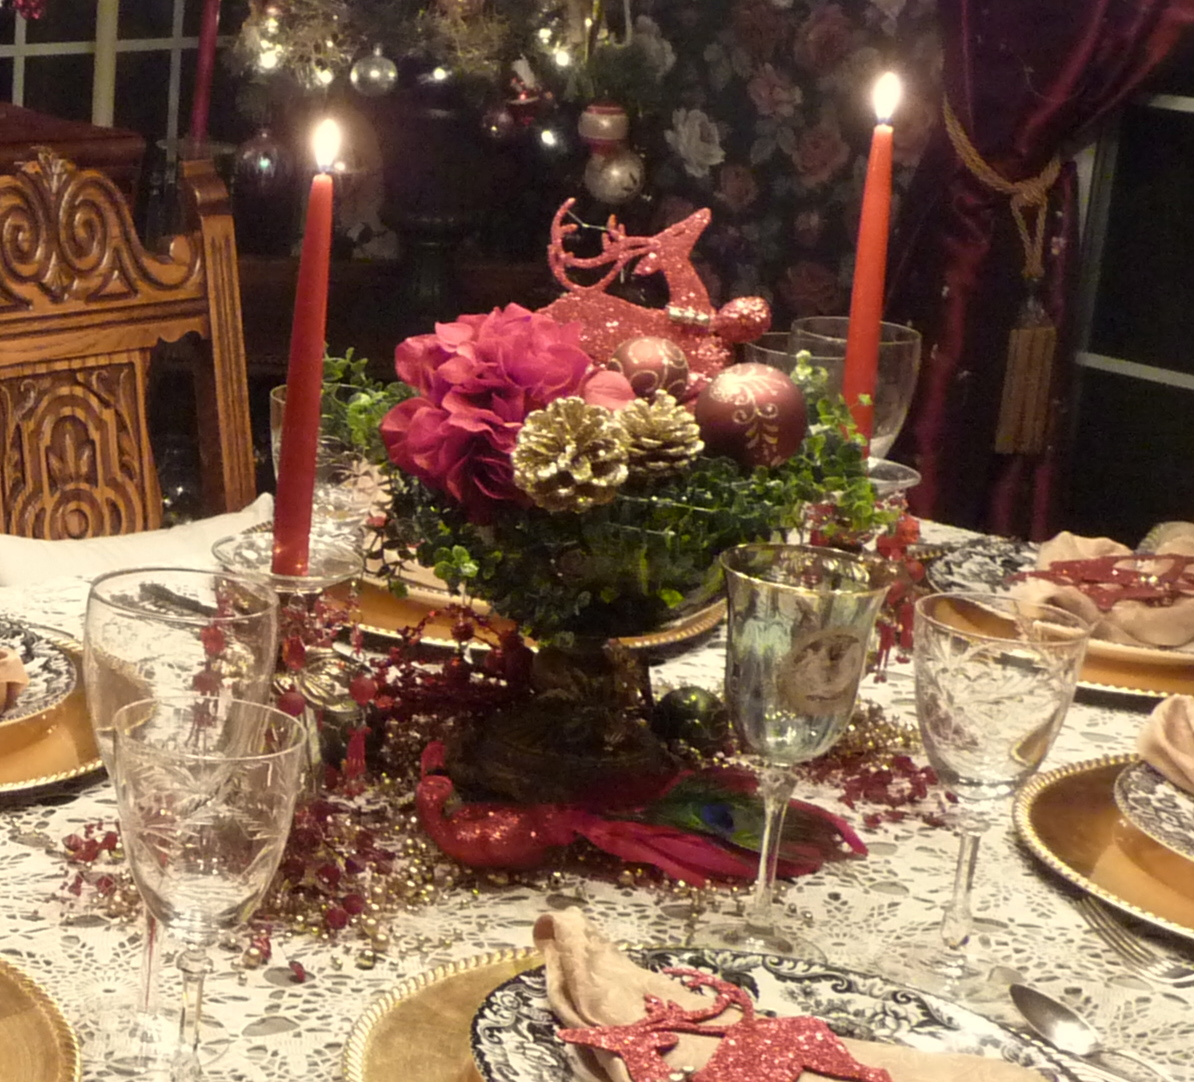 Acrylic Candle Holder Best Decoration for Christmas  : stunning bowl of christmas centerpiece idea on table with cloth and golden plating and acrylic candle holder from homesfeed.com size 1194 x 1082 jpeg 595kB